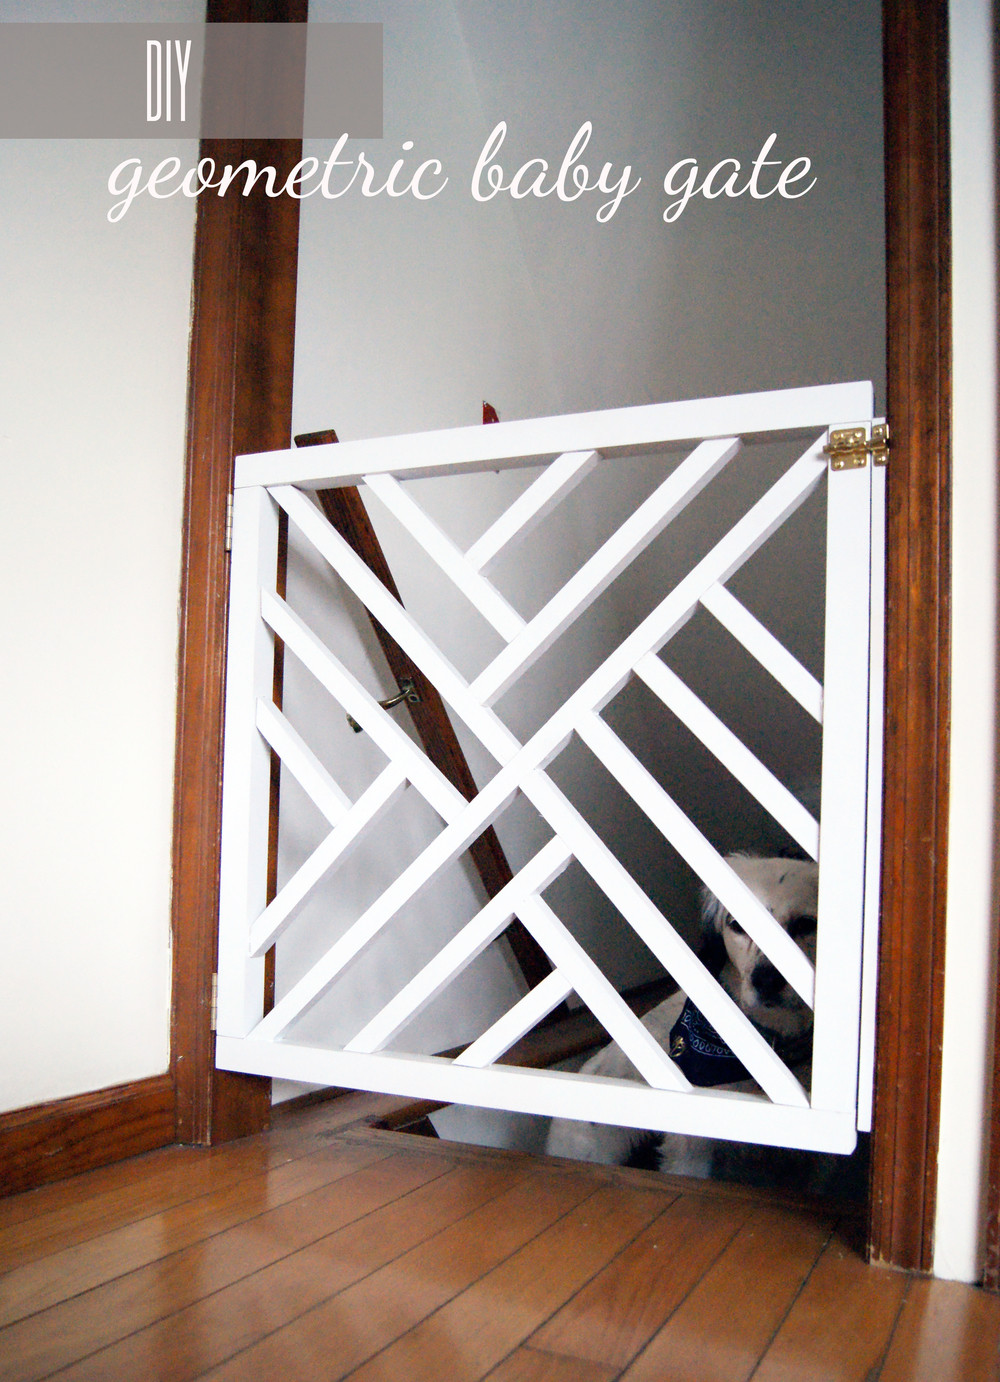 Best ideas about Baby Gates DIY . Save or Pin DIY Geometric Baby Gate — Undeclared Panache Now.